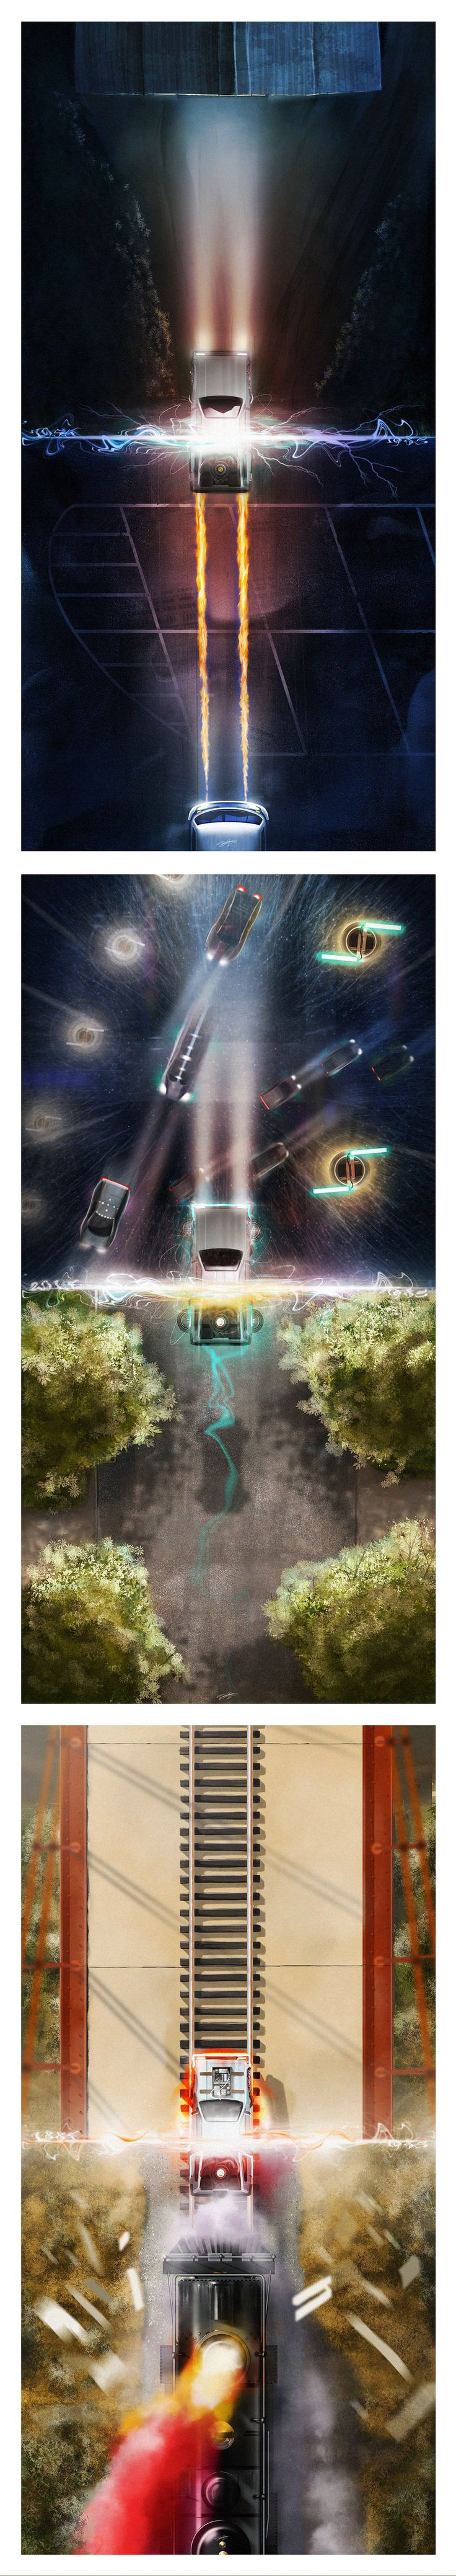 Back To The Future Trilogy Poster by Andy Fairhurst